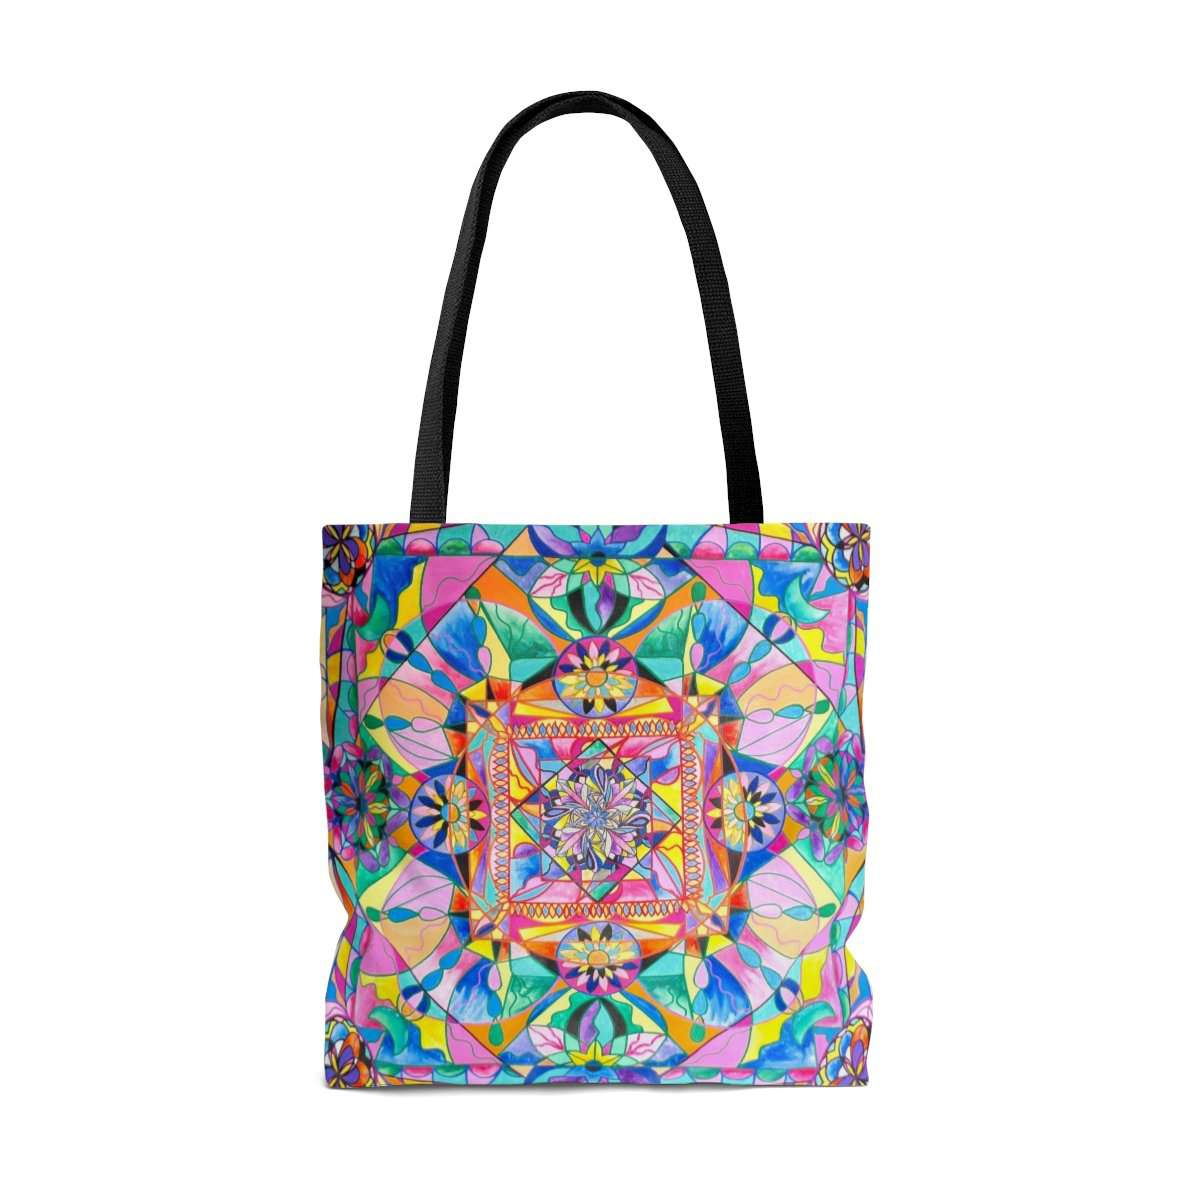 Renewal - AOP Tote Bag